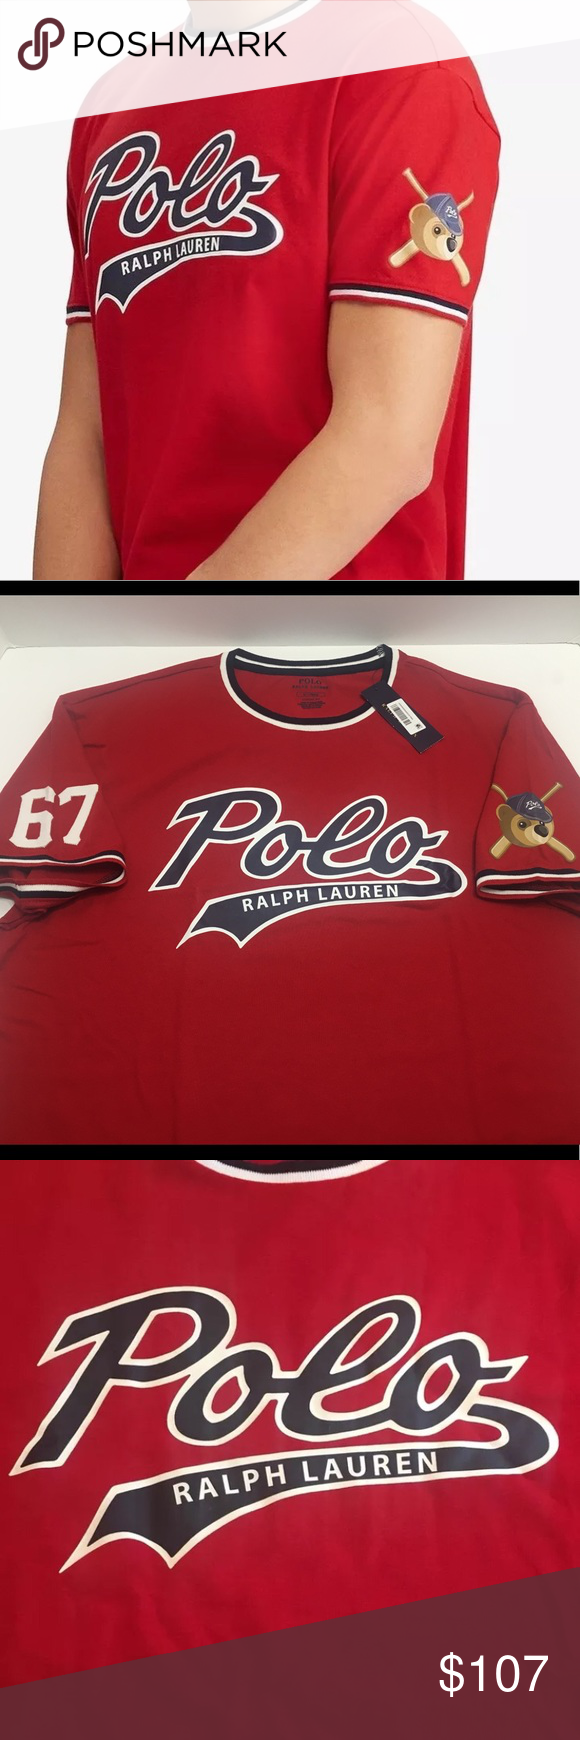 Polo Bear Ralph Lauren Bears Baseball Jersey Red Polo Bear Ralph Lauren  Bears Baseball Jersey T Shirt Classic Fit Red Size Medium Polo by Ralph  Lauren ... 84fc2cac00e24